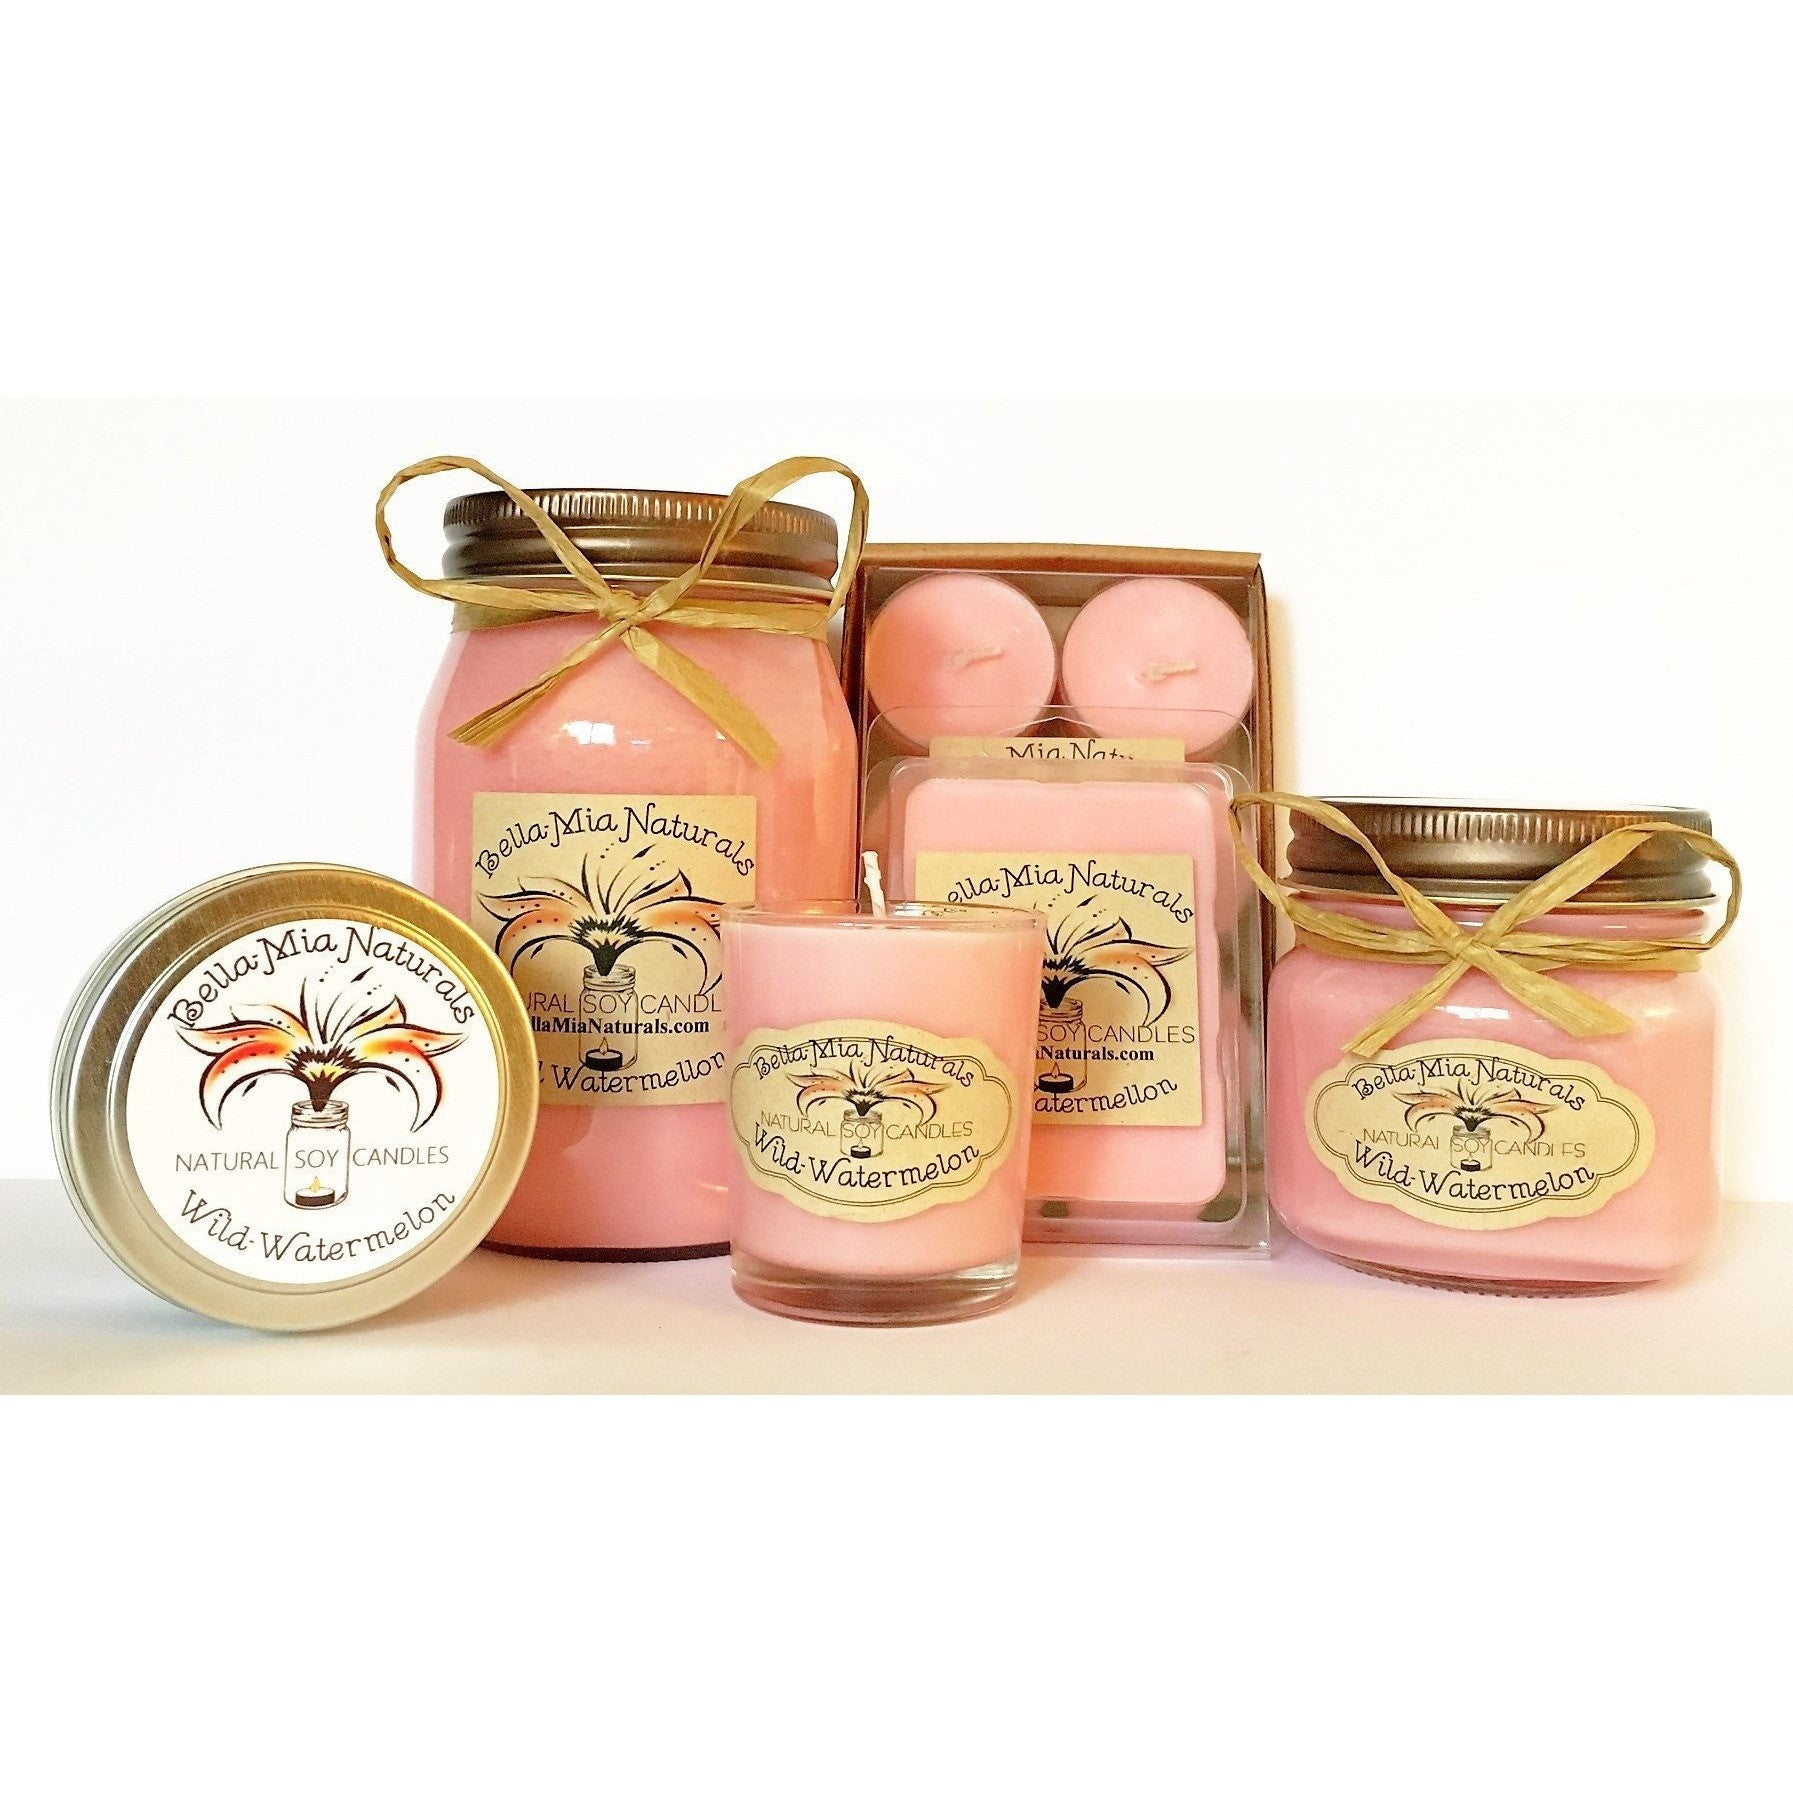 Wild-Watermelon Natural Hand Poured Soy Candles -  - Bella-Mia Naturals All Natural Soy Candles & Lip Balms - 1